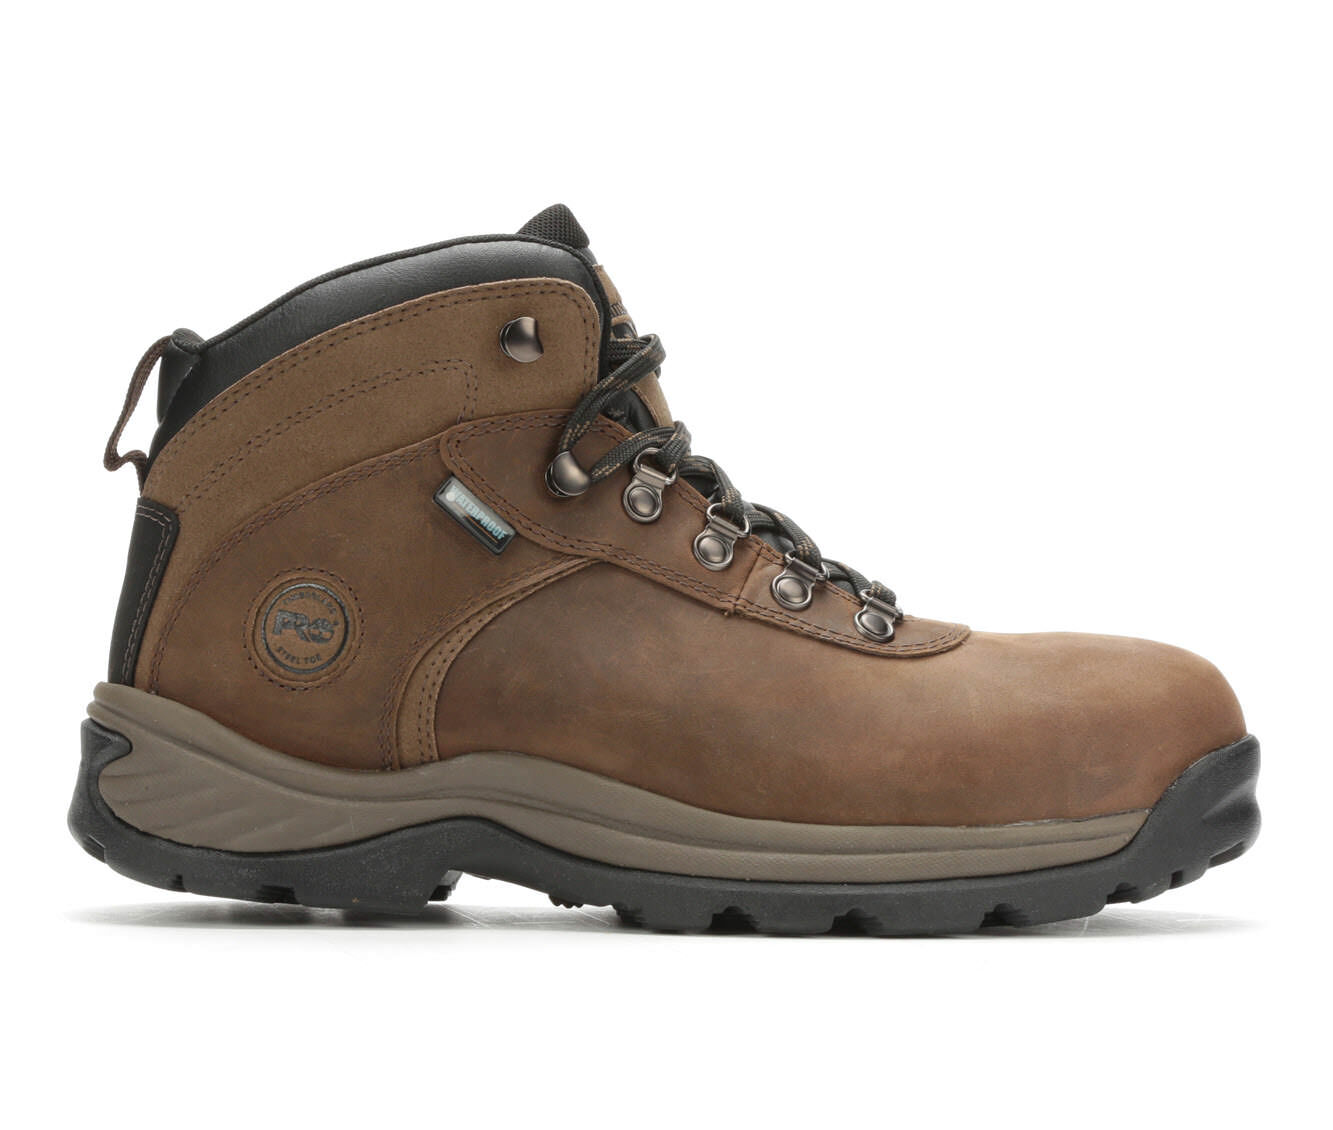 Men's Timberland Pro Flume A1Q8V Steel Toe Waterproof Work Boots Brown